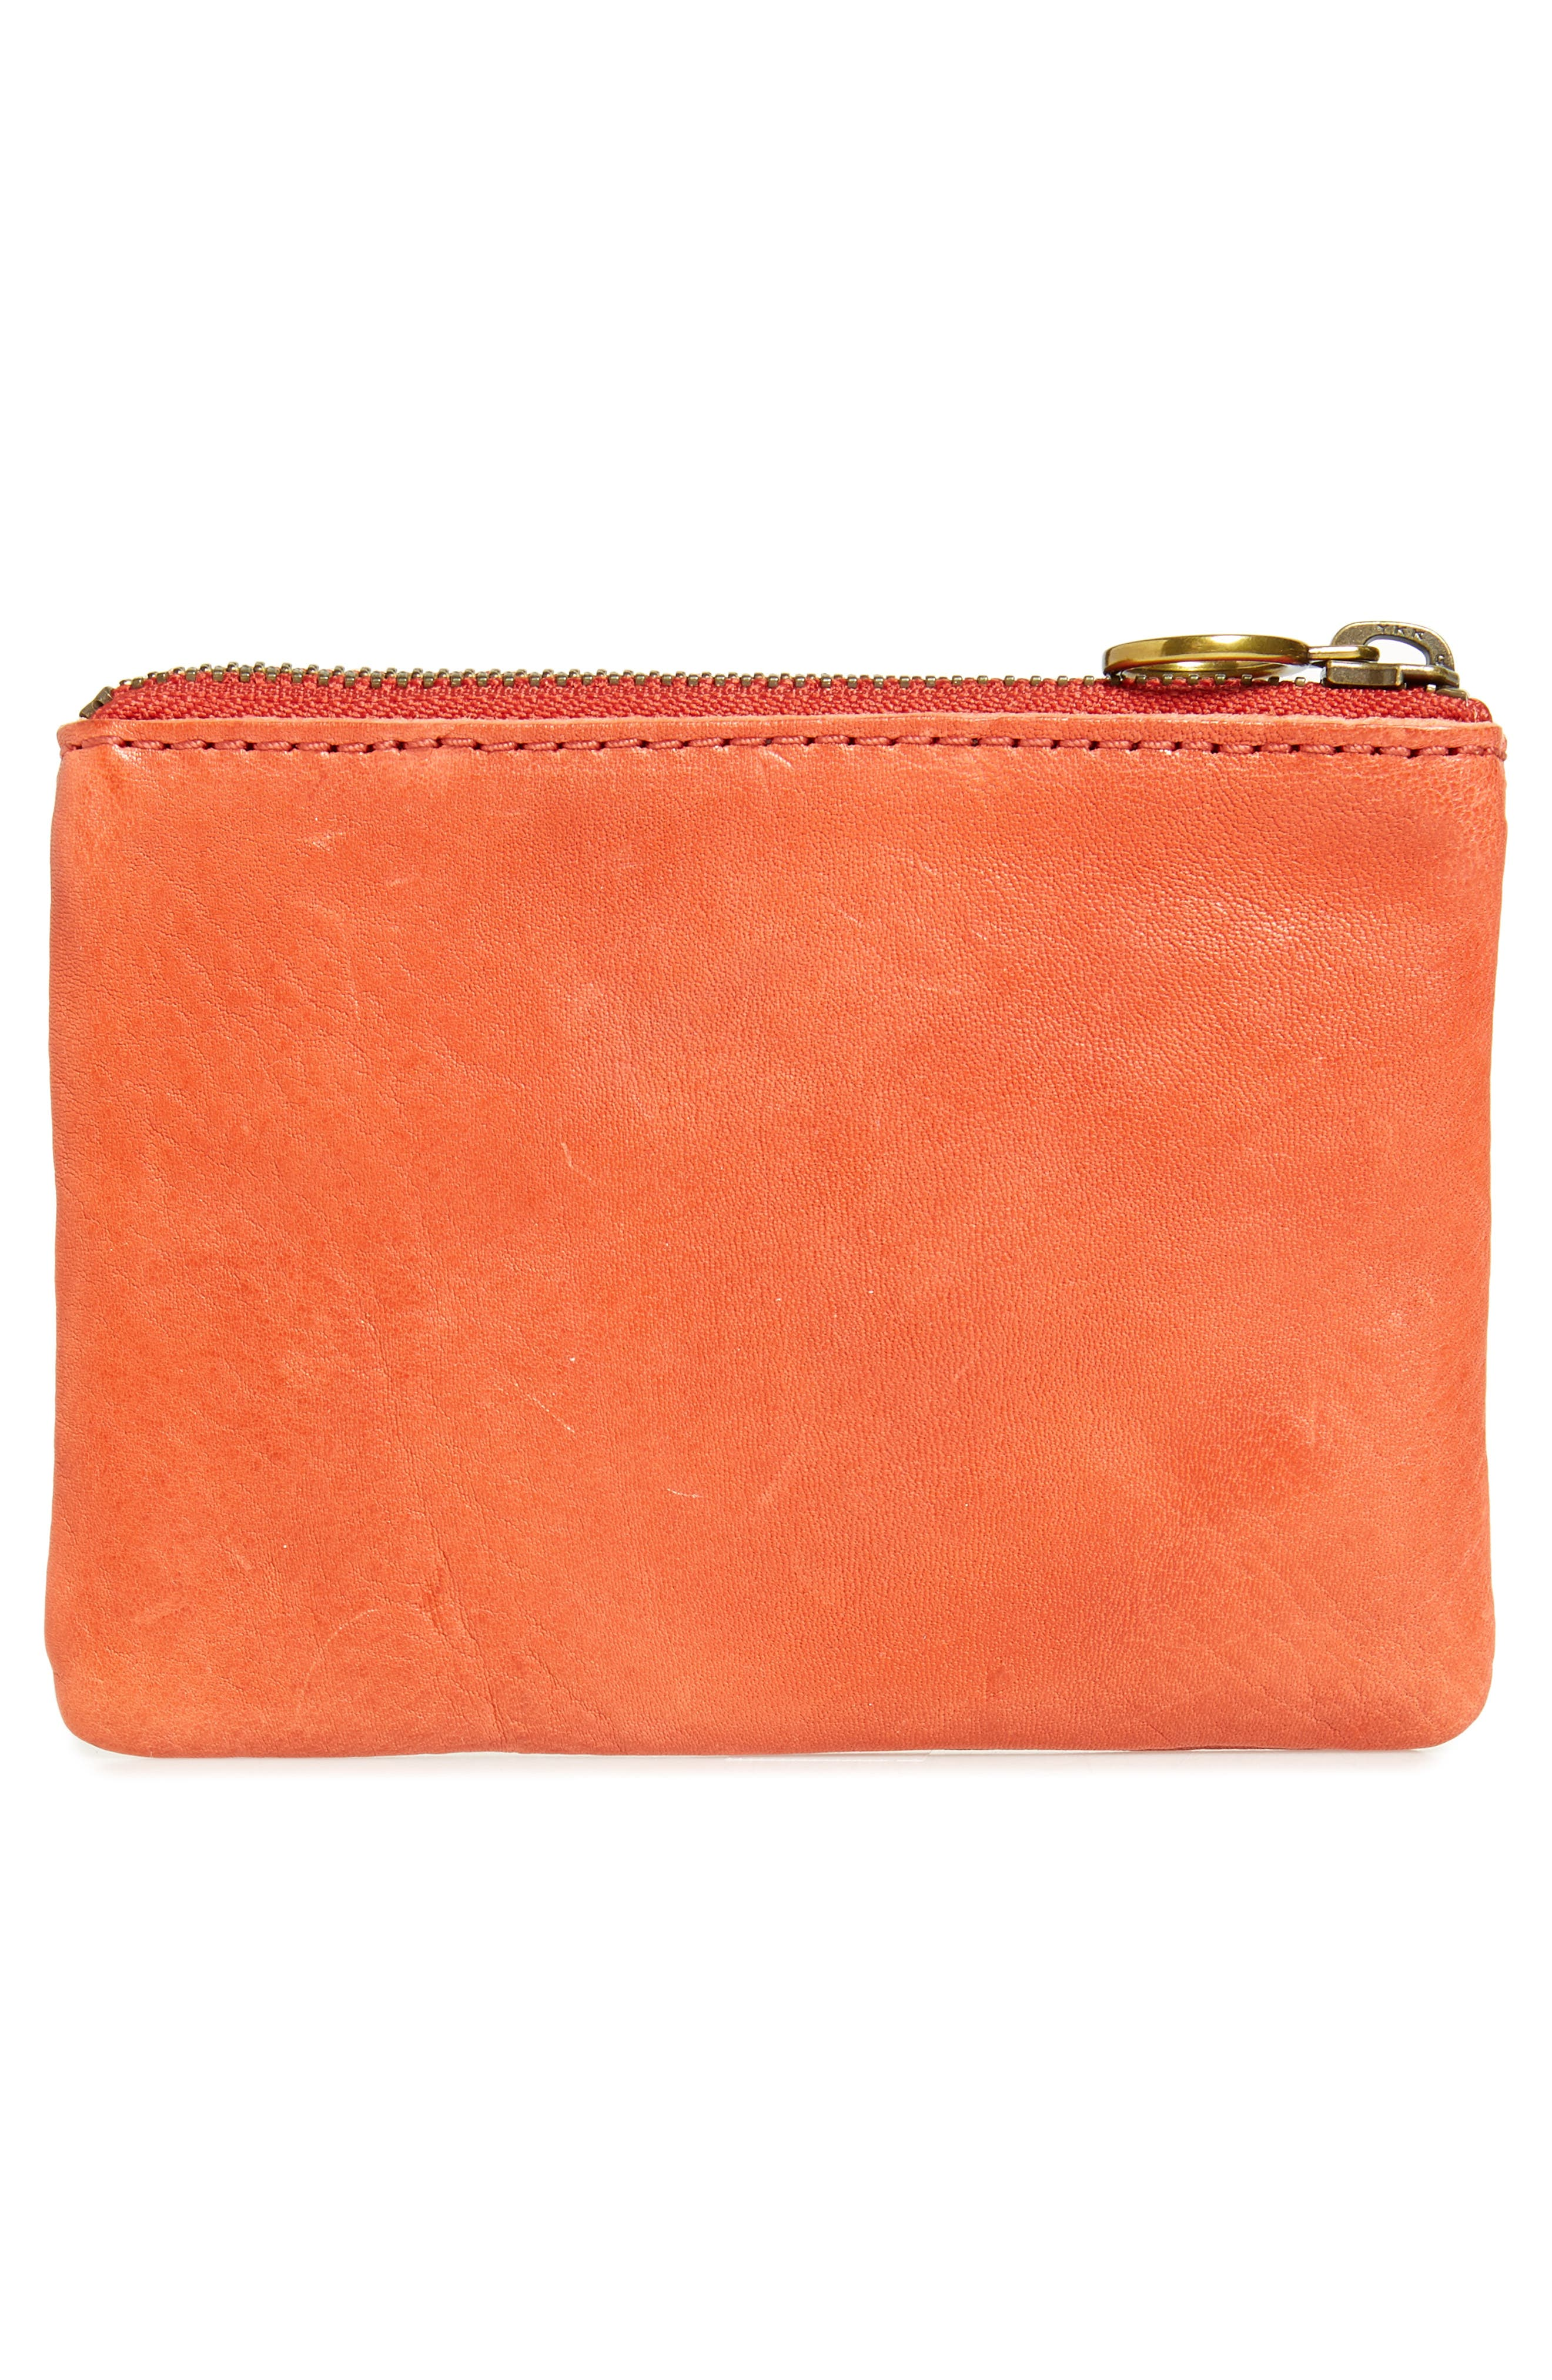 Eye Embroidered Leather Zip Pouch,                             Alternate thumbnail 3, color,                             Parched Terracotta